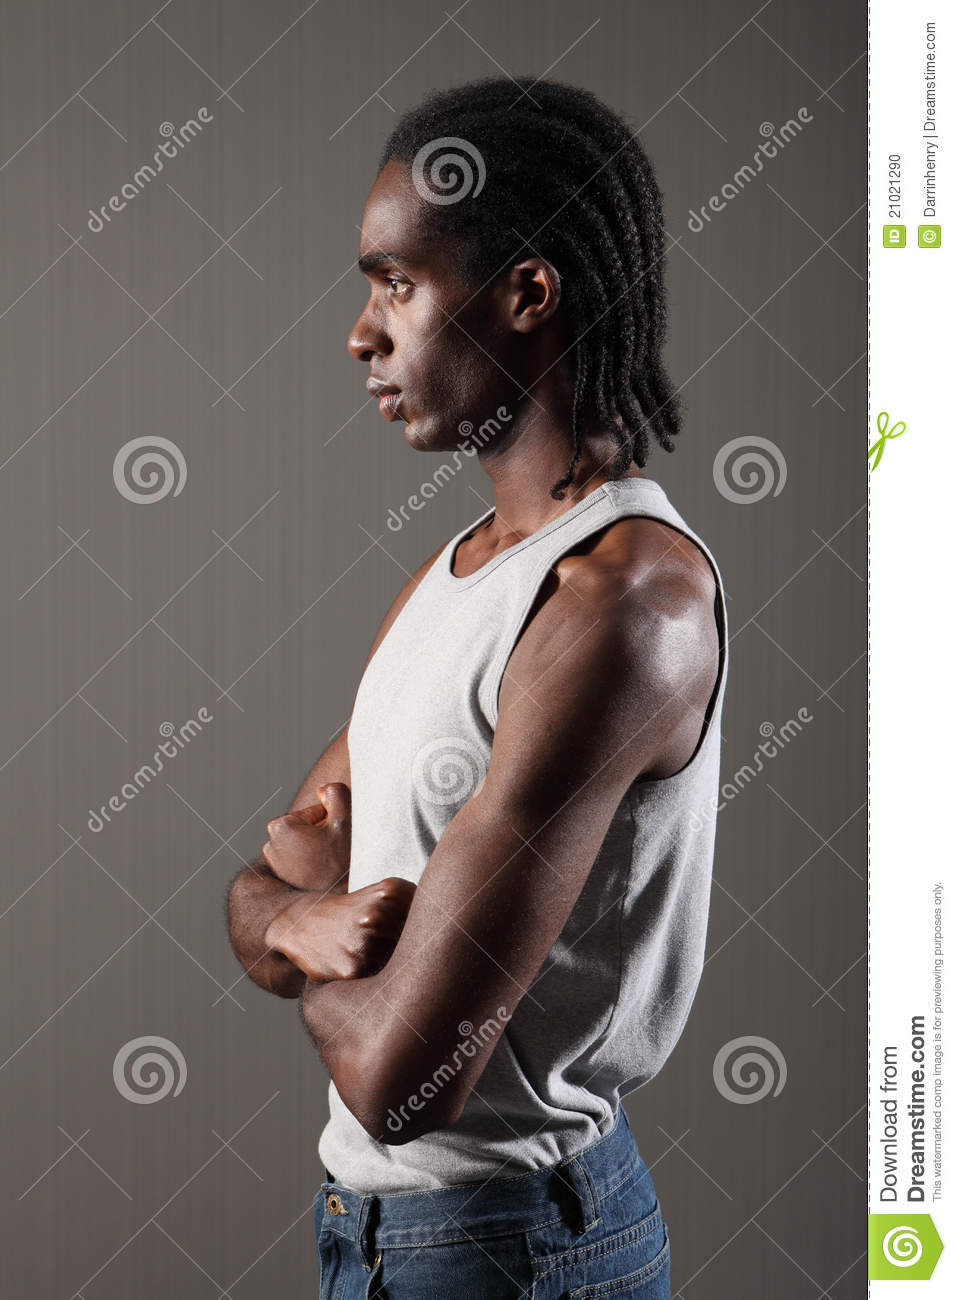 Profile Of Tough Young Black Man With Dreadlocks Stock Photo